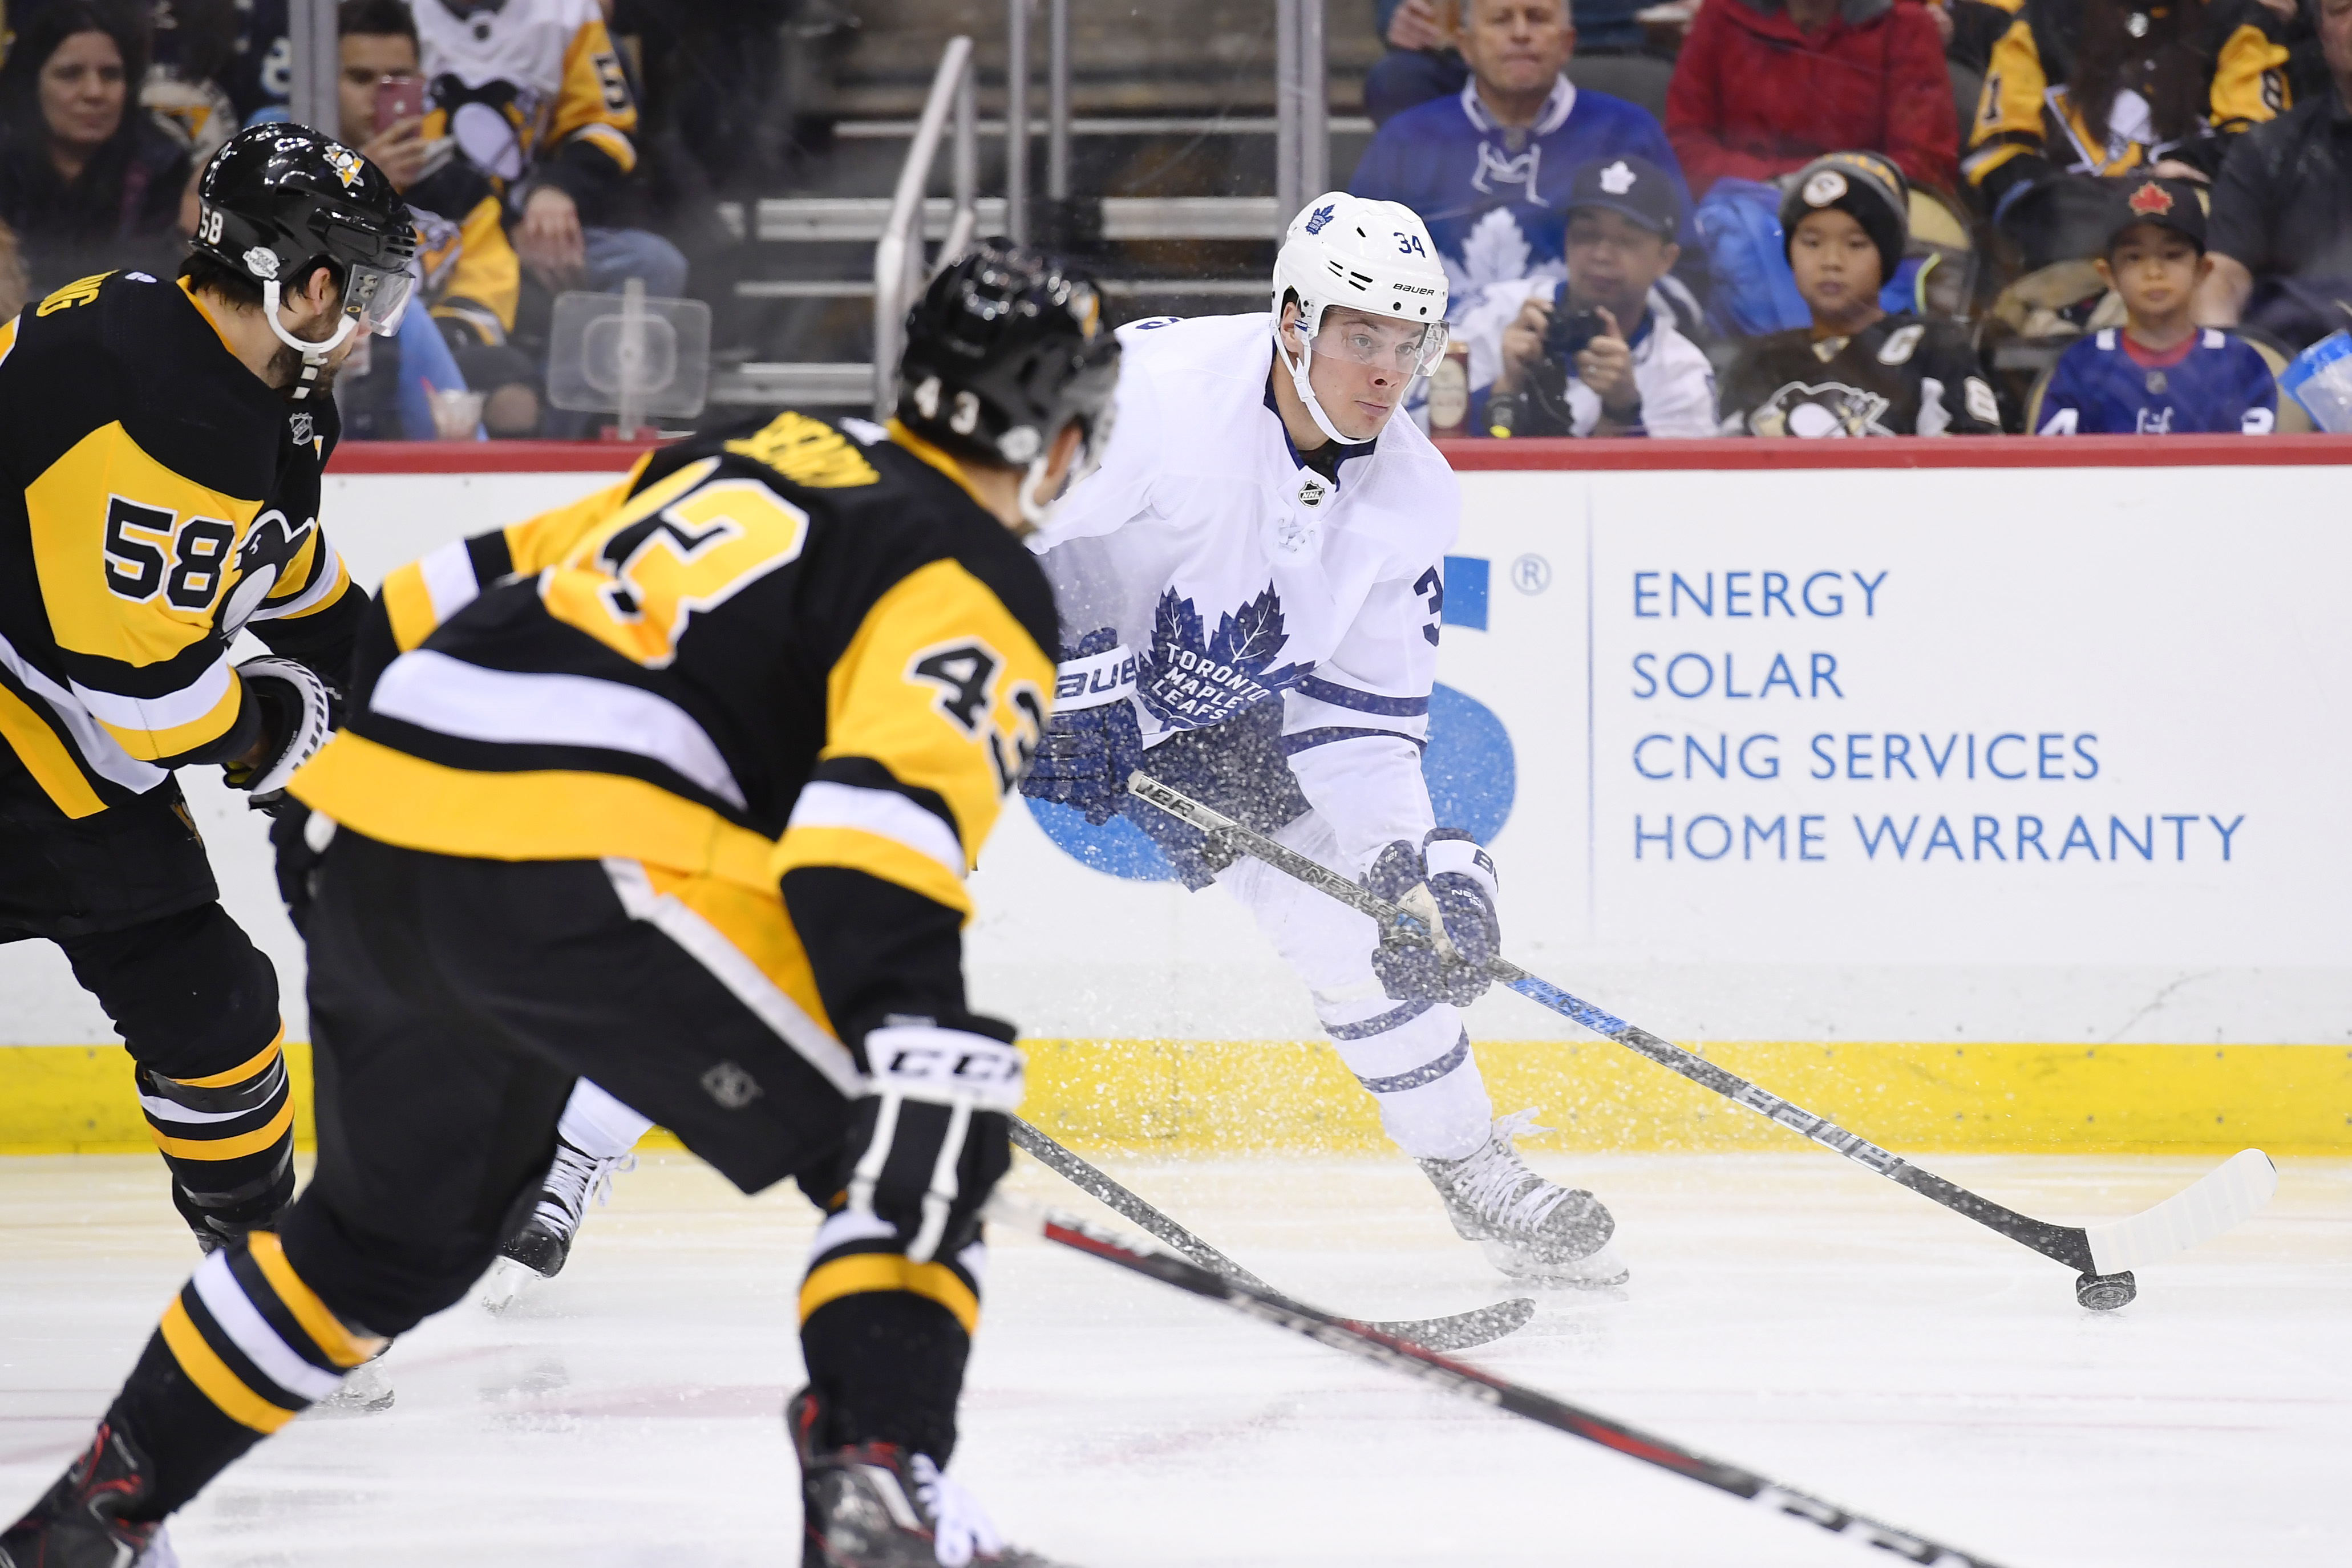 NHL: FEB 17 Maple Leafs at Penguins